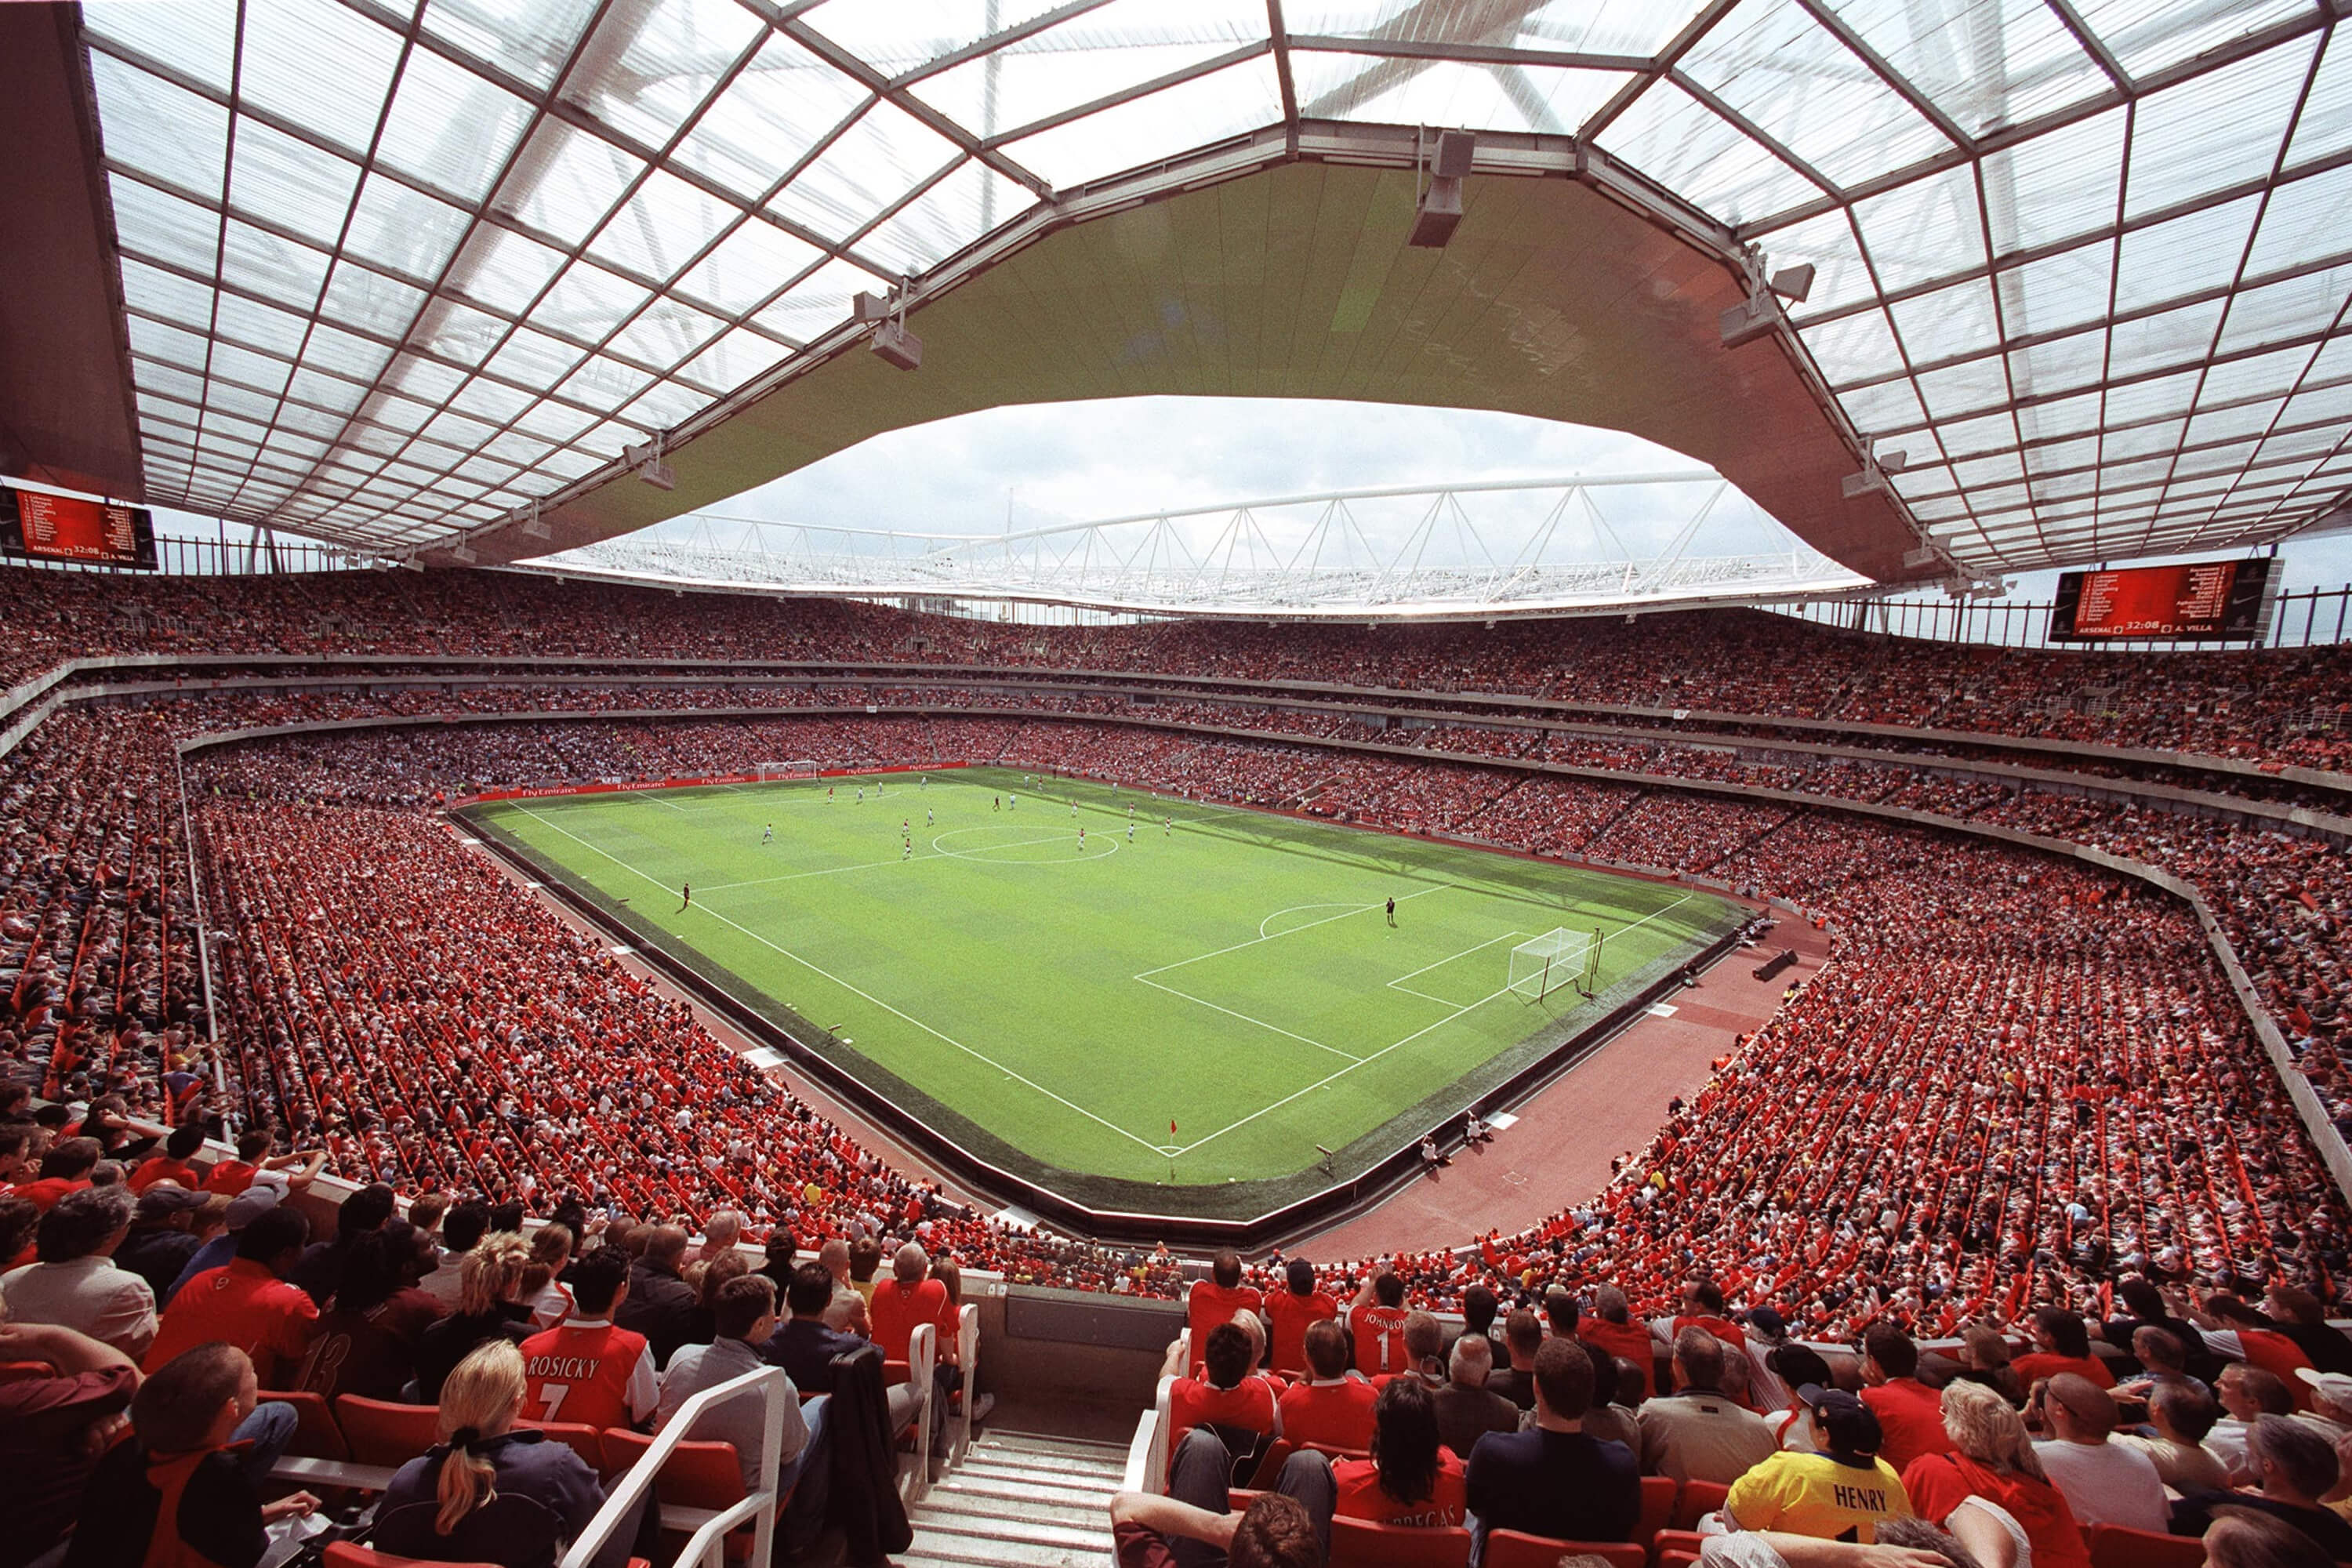 Two tickets to see Arsenal at Emirates stadium